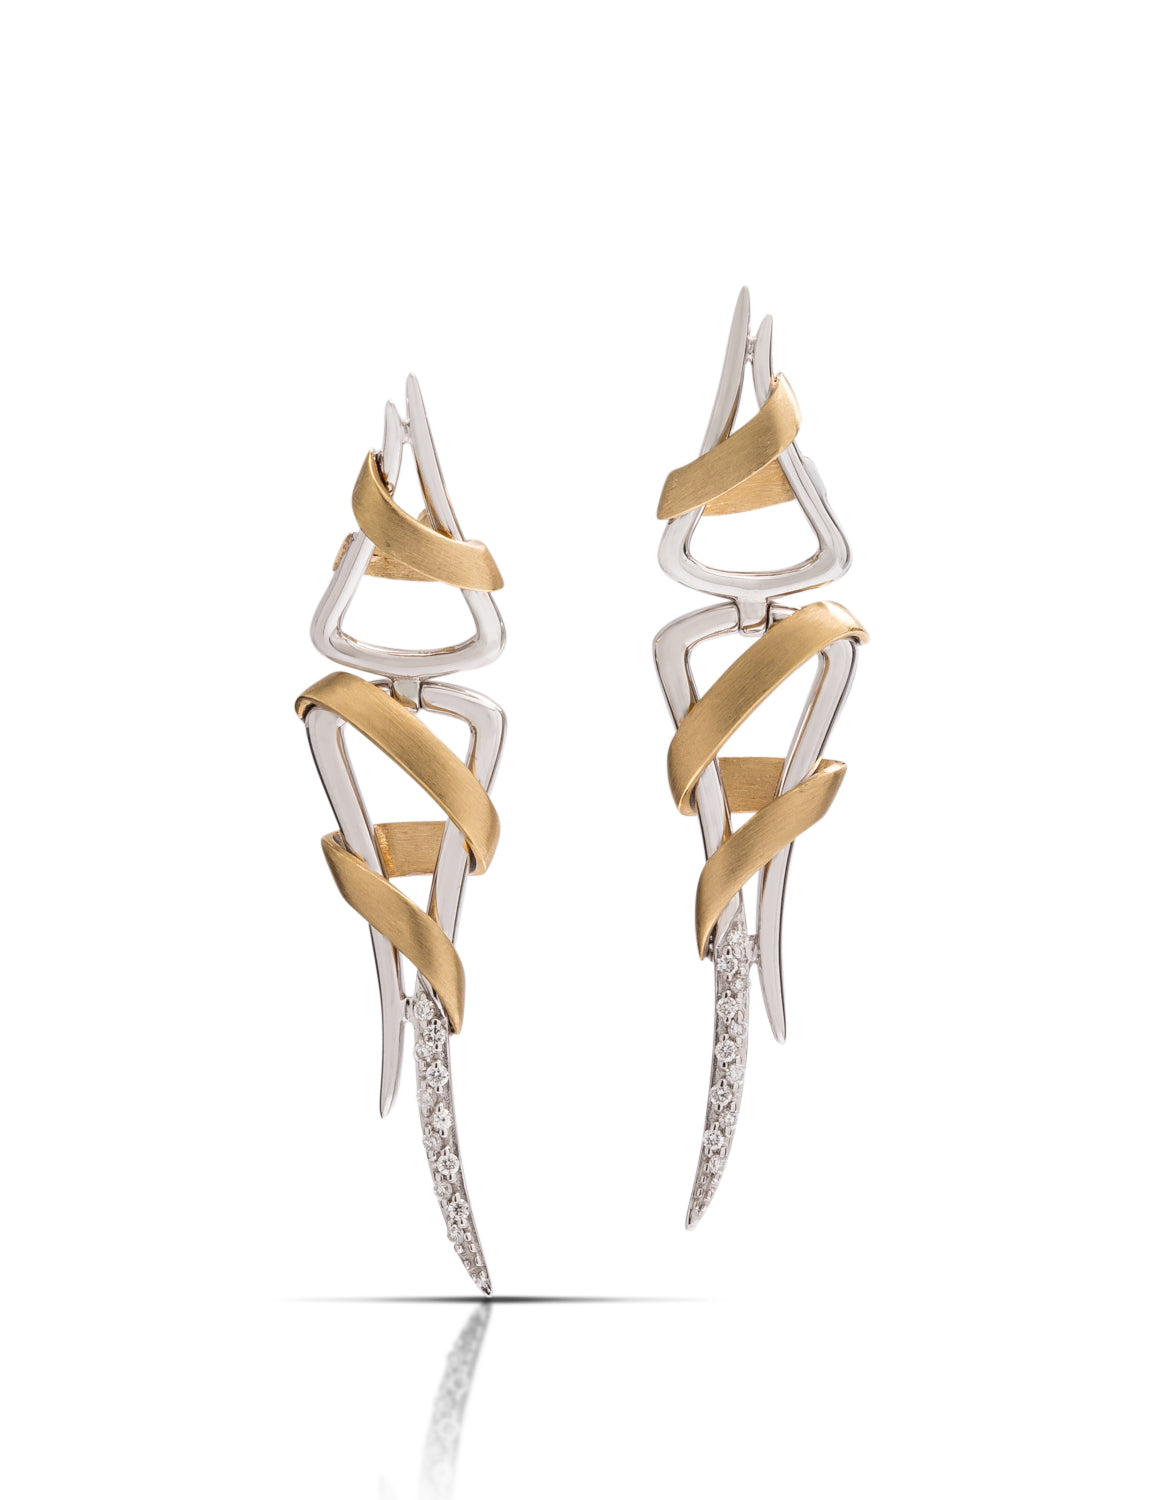 Breuning Two-Tone Ribbon Earrings - Charles Koll Jewellers